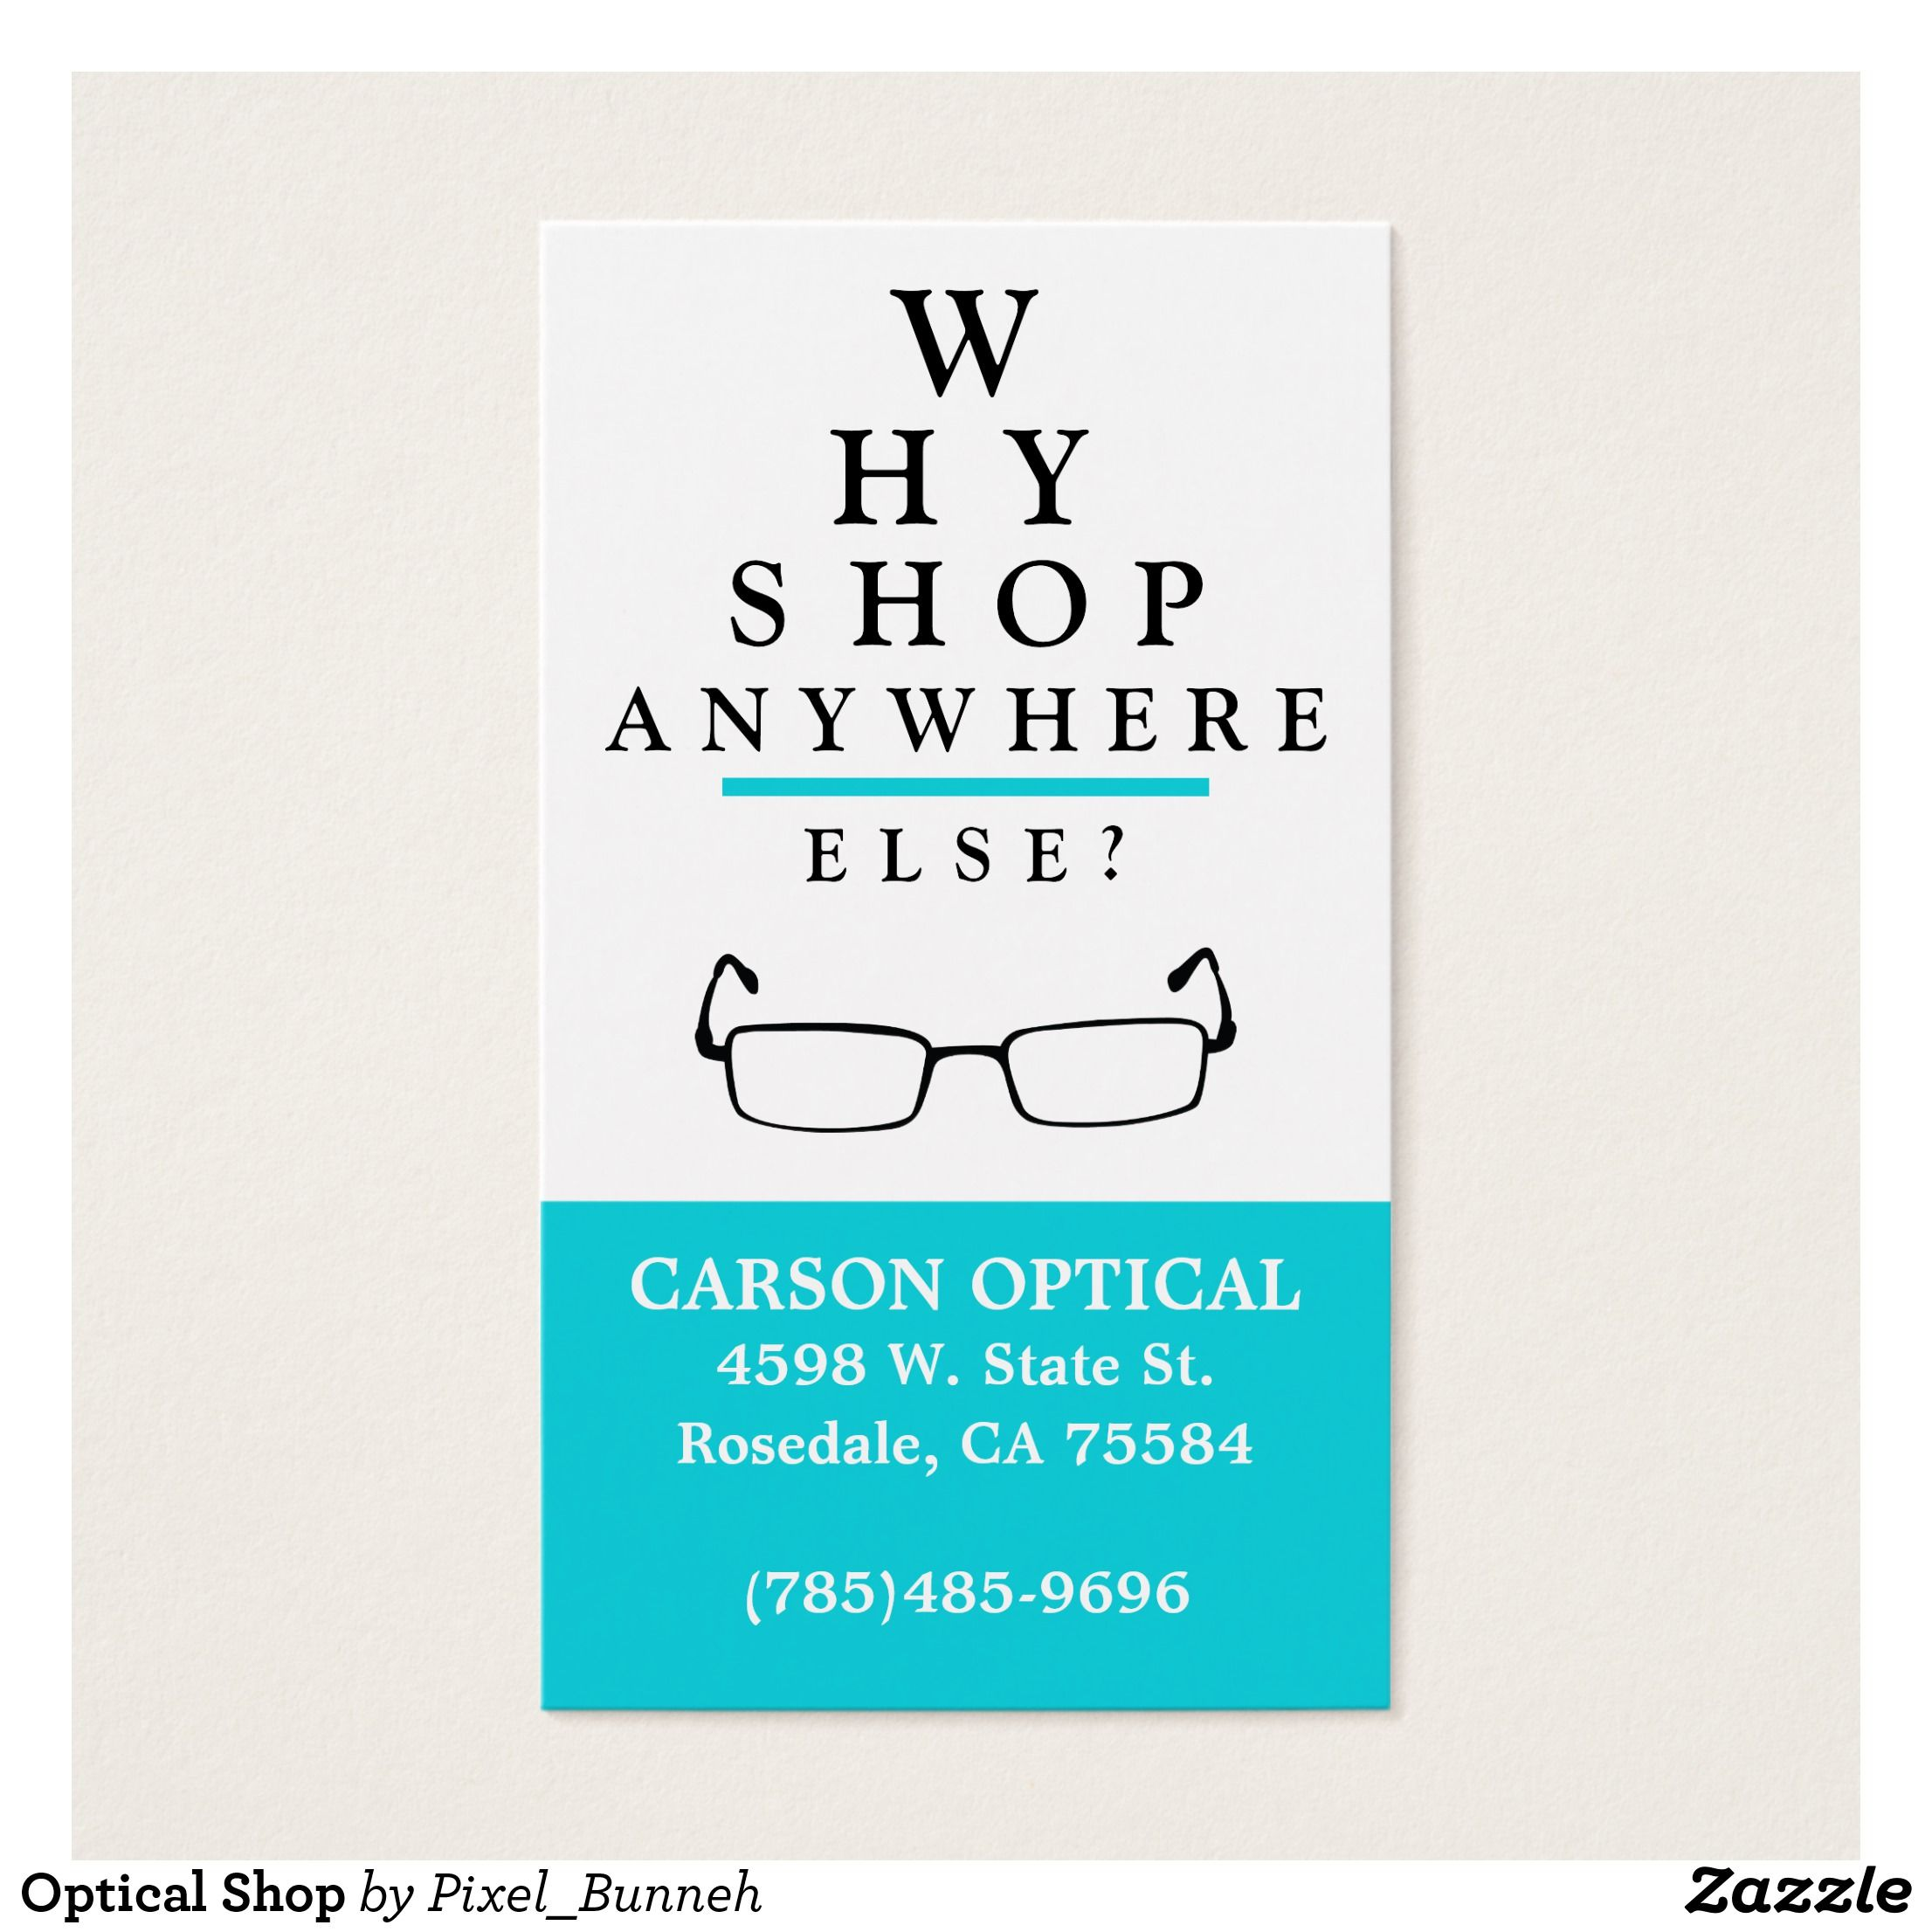 Optical Shop Business Card Zazzle Com In 2021 Optical Shop Doctor Business Cards Business Card Template